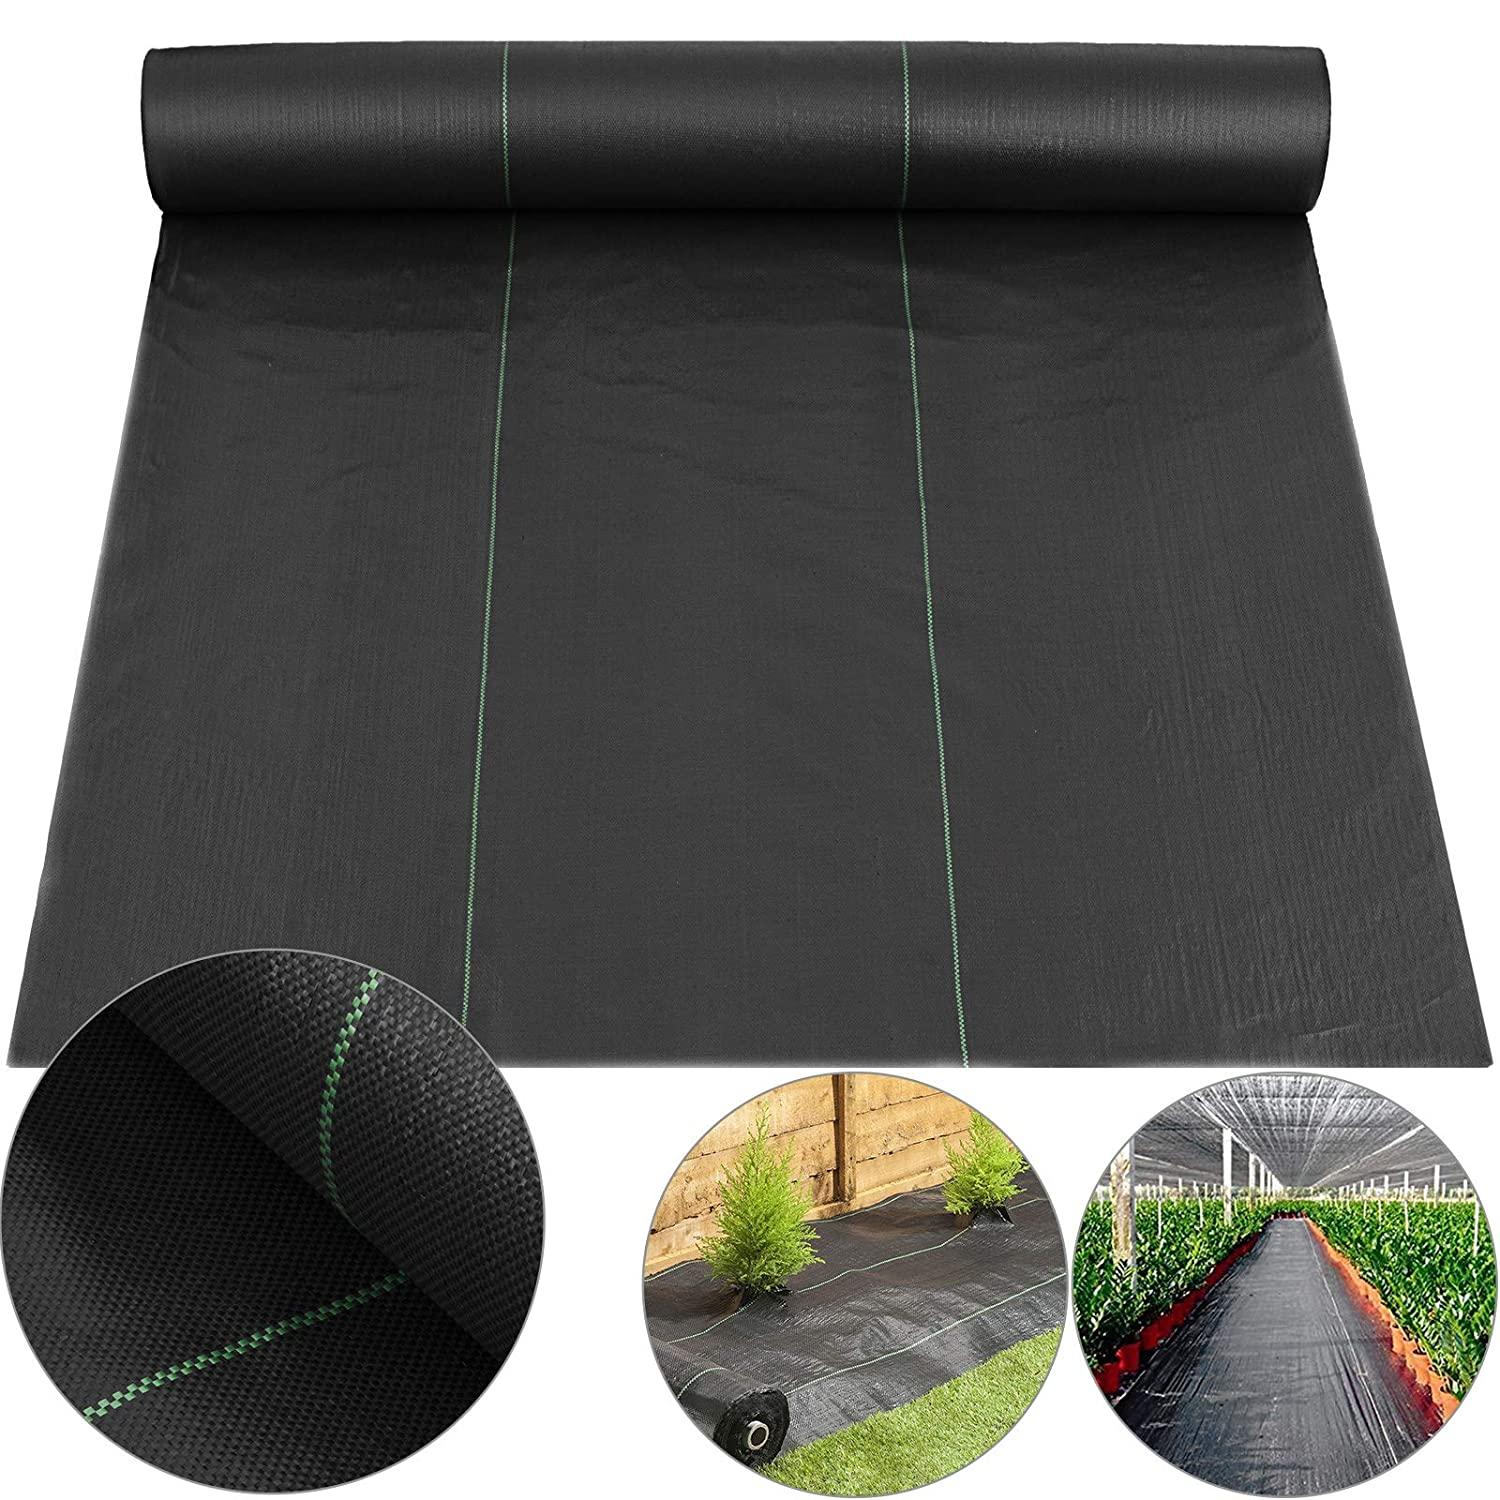 Happybuy Landscape Fabric 6.5ft x 300ft 3oz Garden Weed Barrier Heavy Duty Polypropylene Black Ground Cover Weed Barrier for Soil Erosion Control Weed Reduce